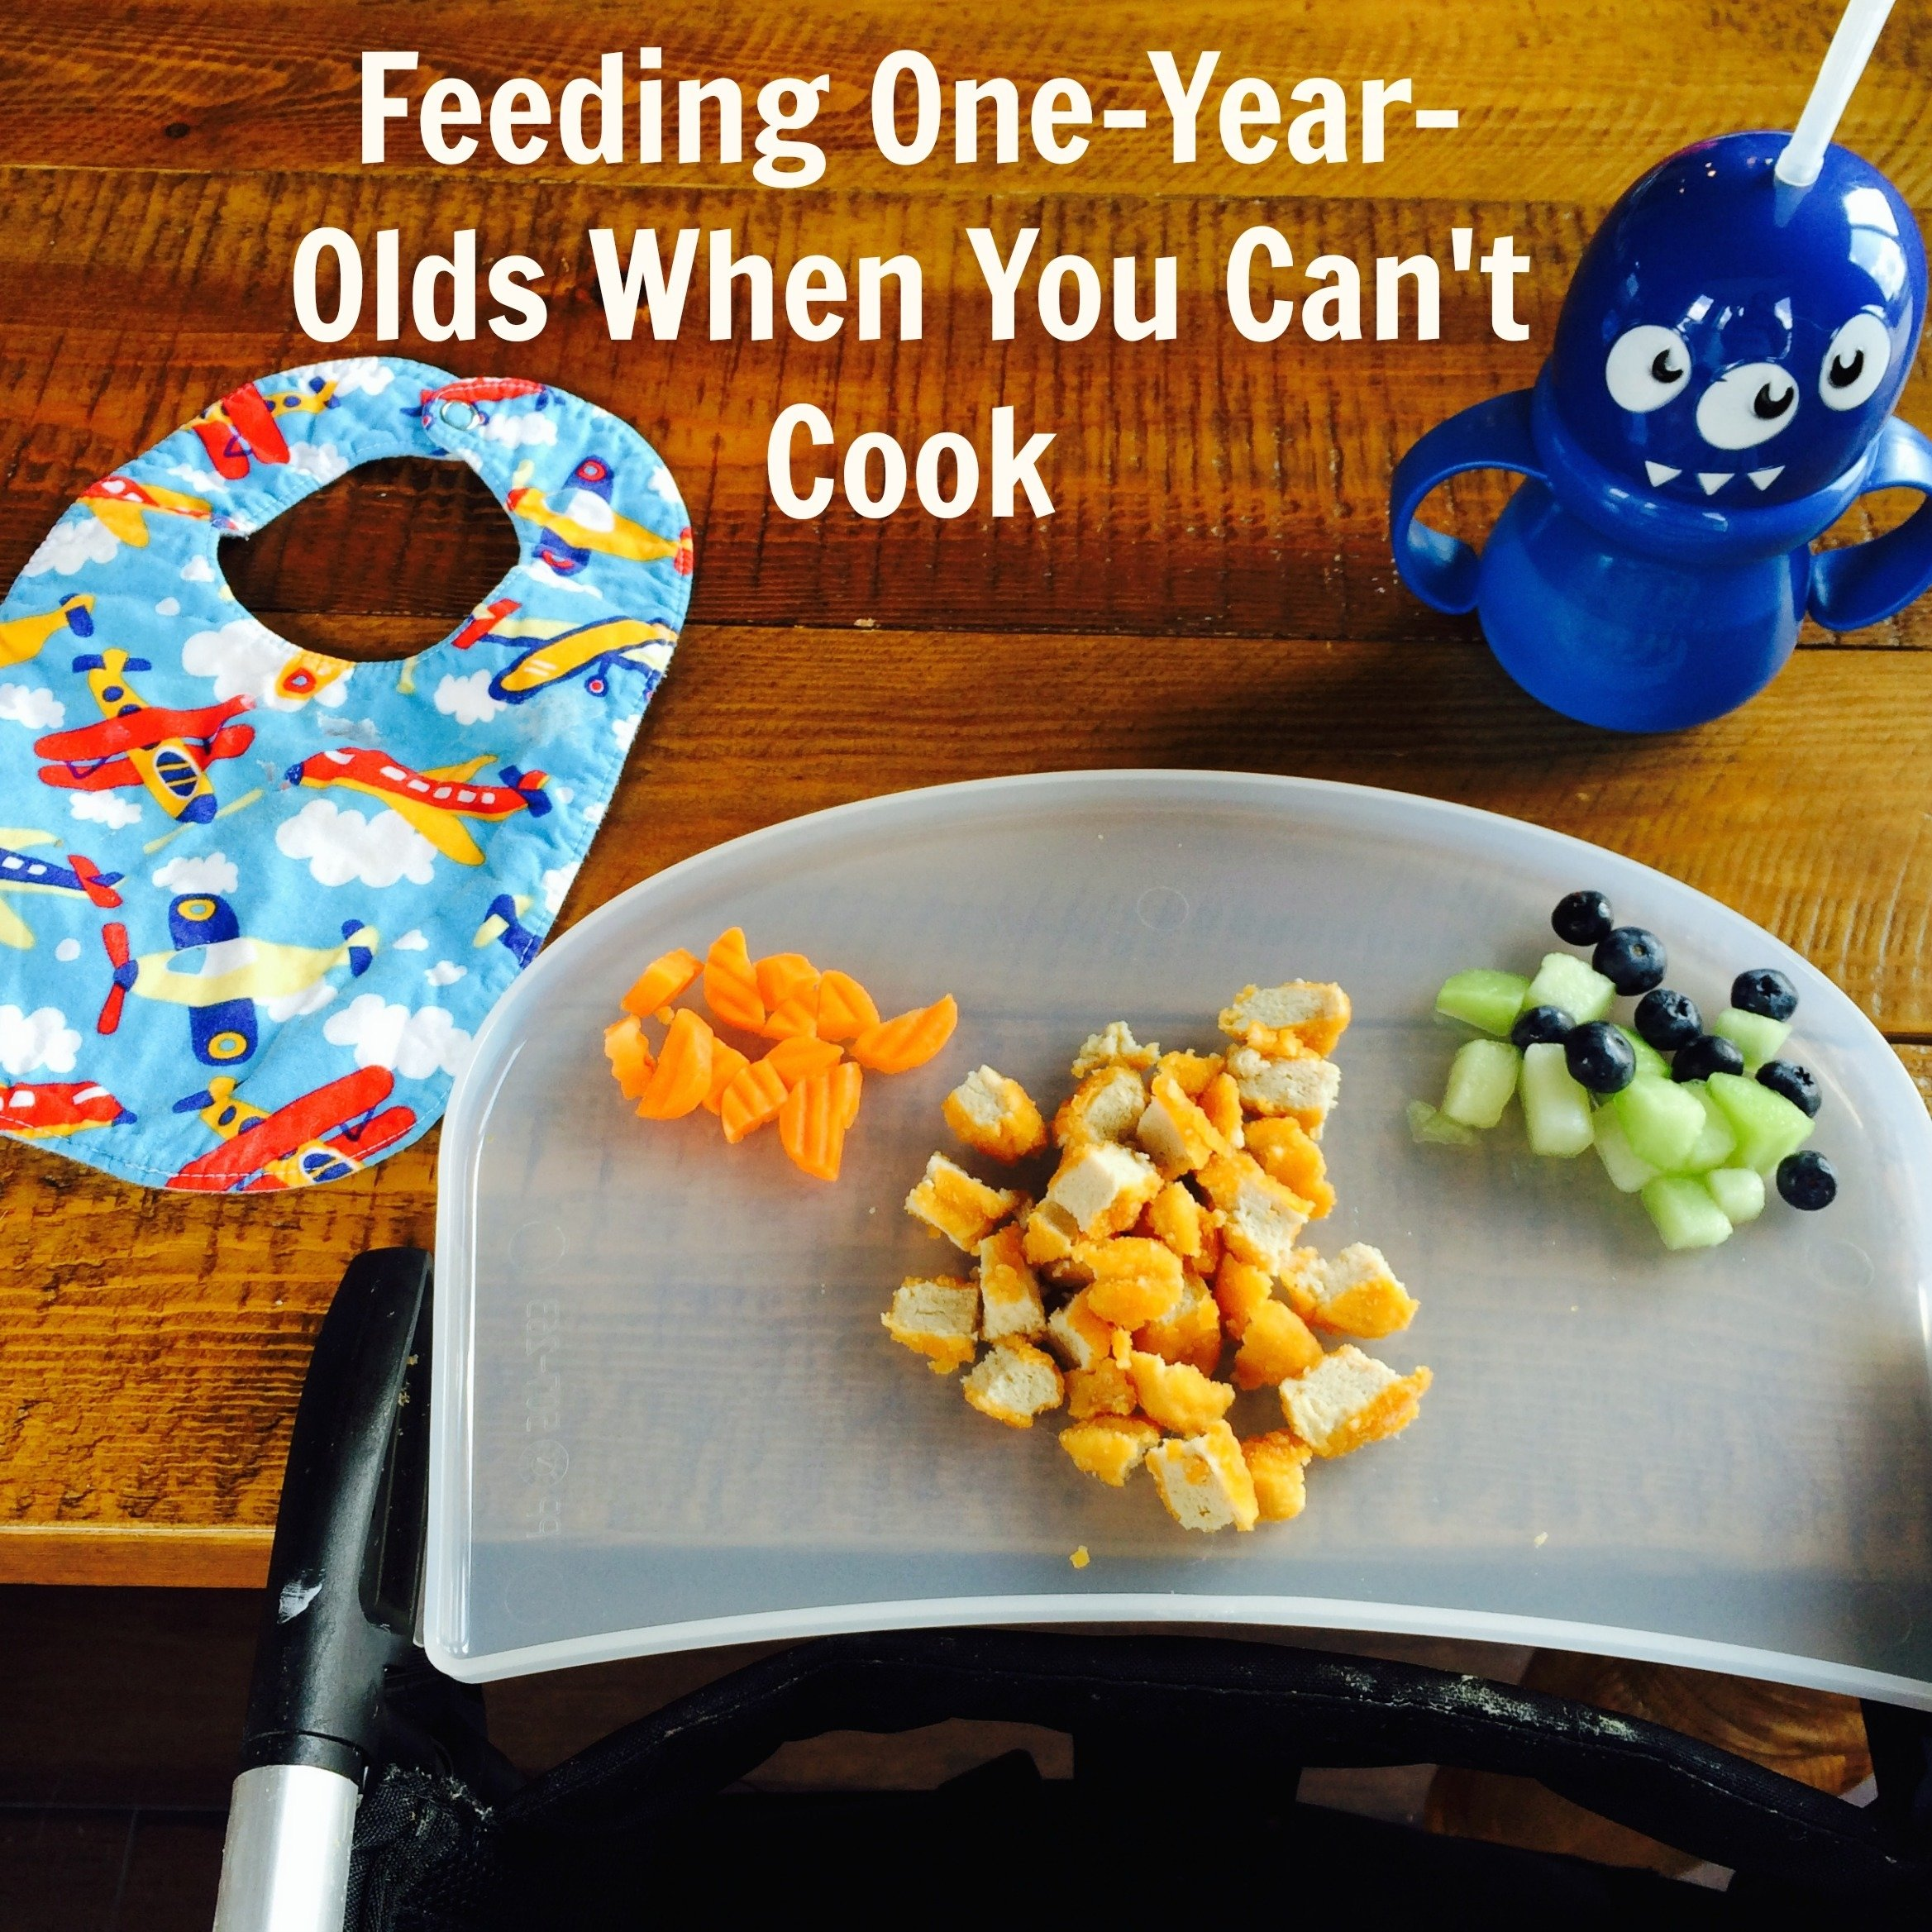 10 Nice Food Ideas For 1 Year Old feeding one year olds 2 2020